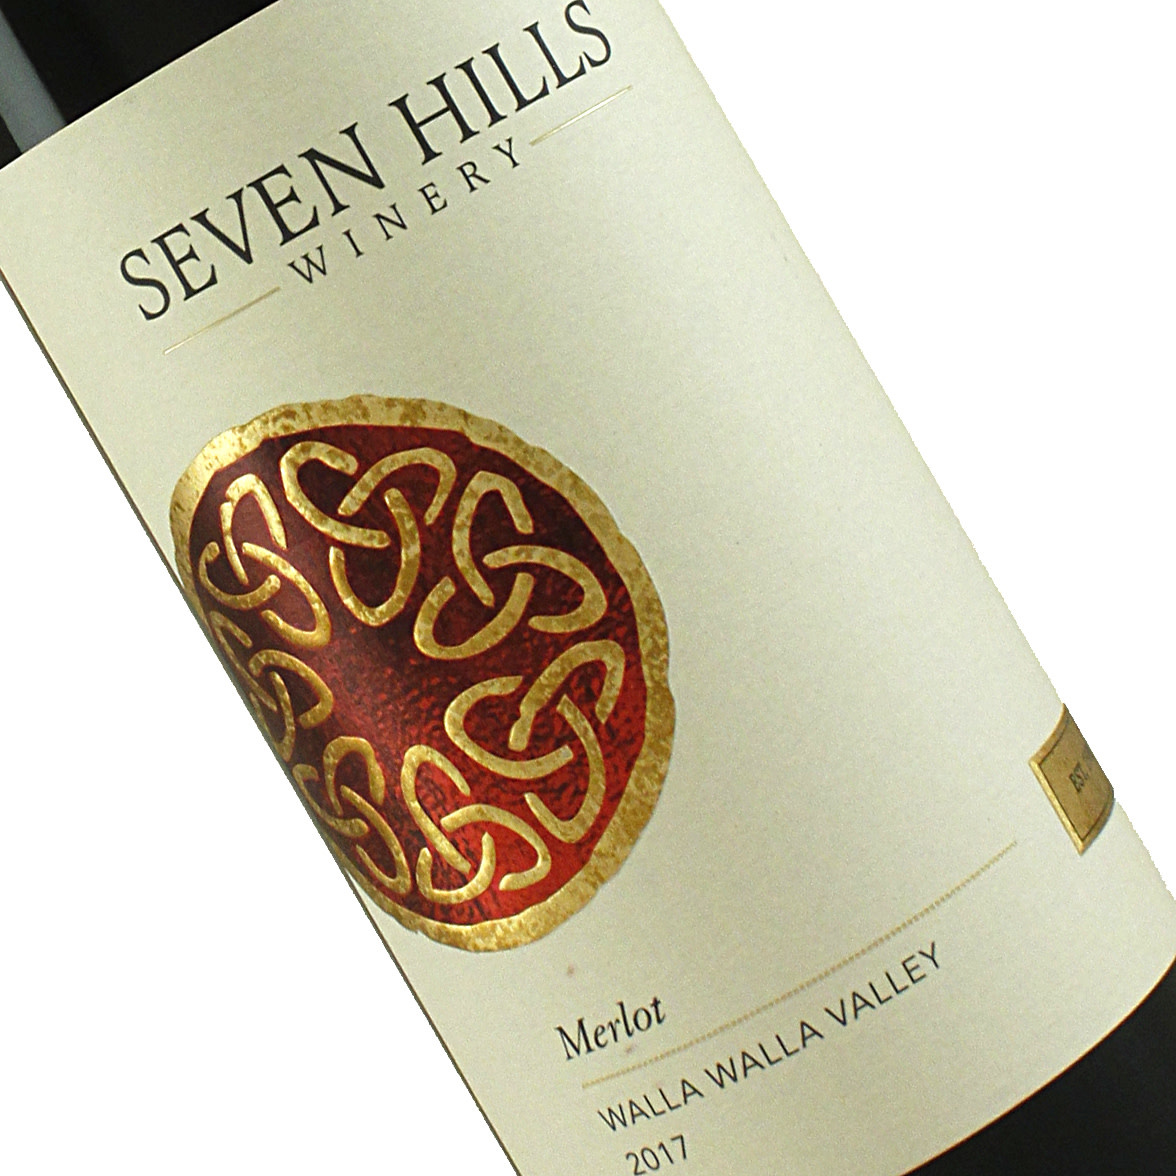 Seven Hills 2017 Merlot Walla Walla Valley, Washington